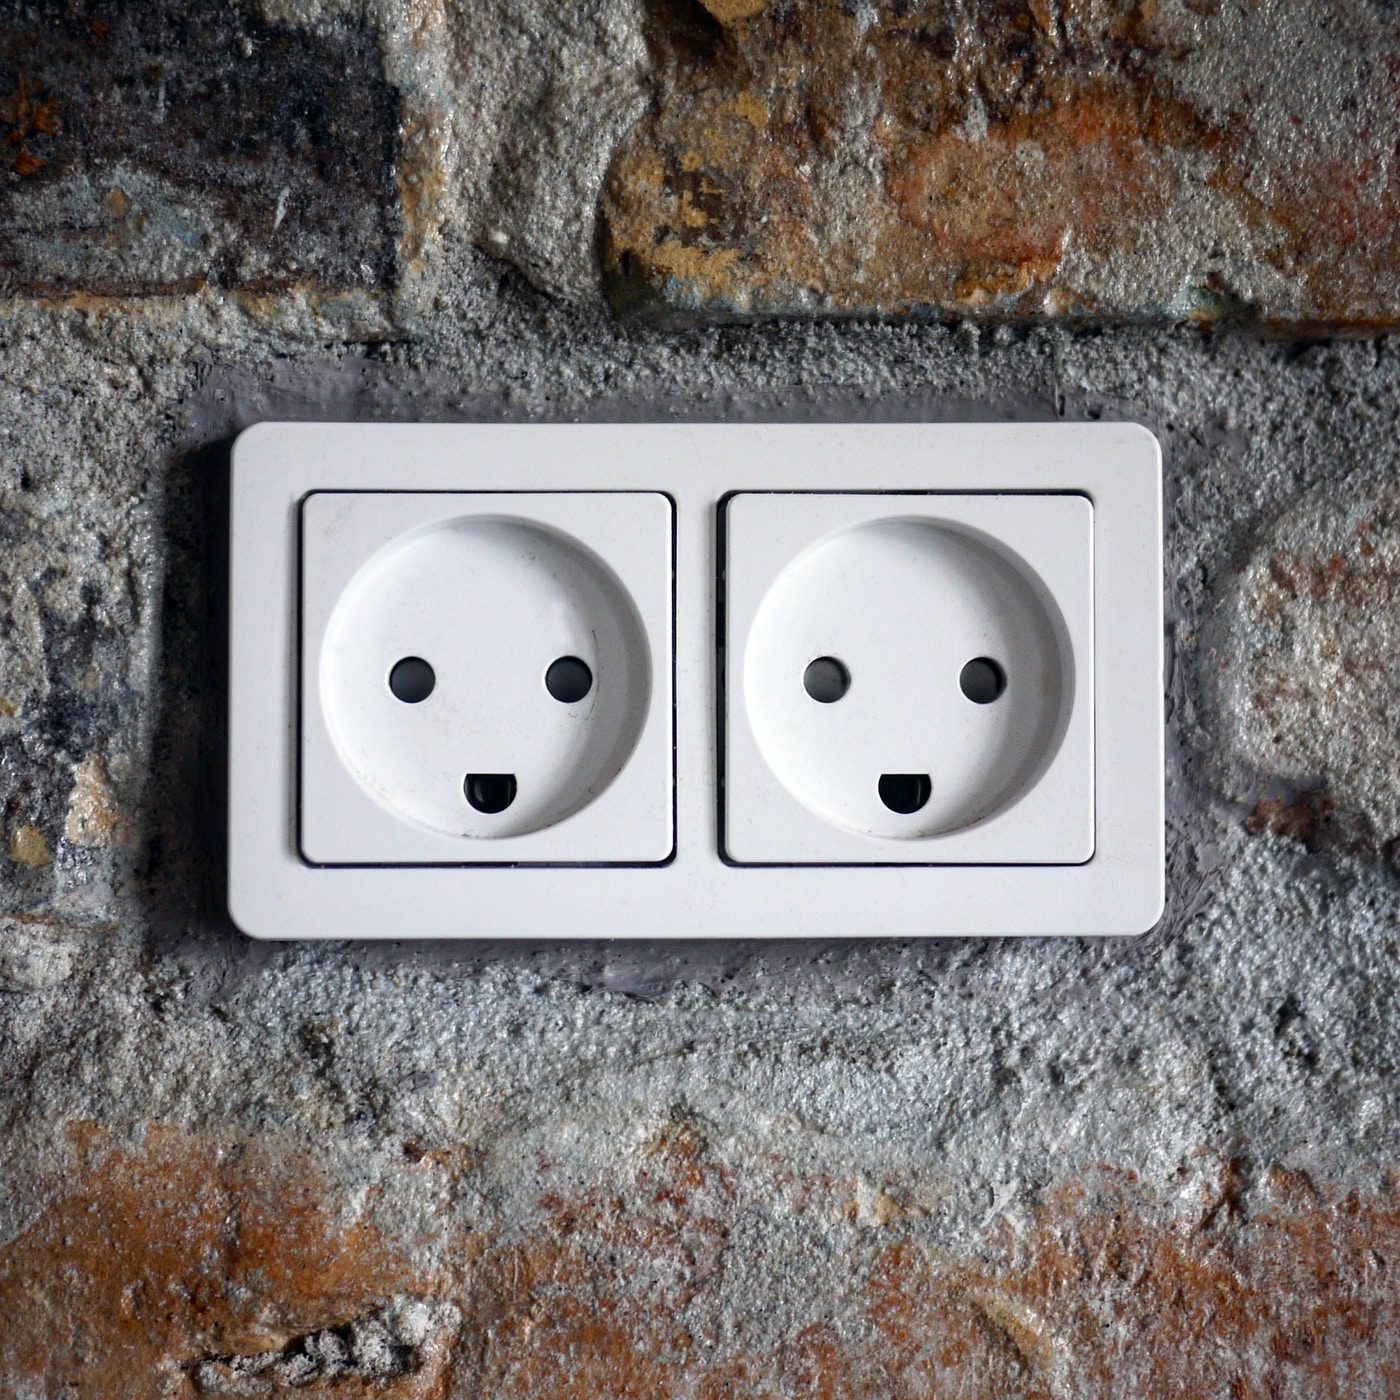 Two white plugs with holes that form a smiling face